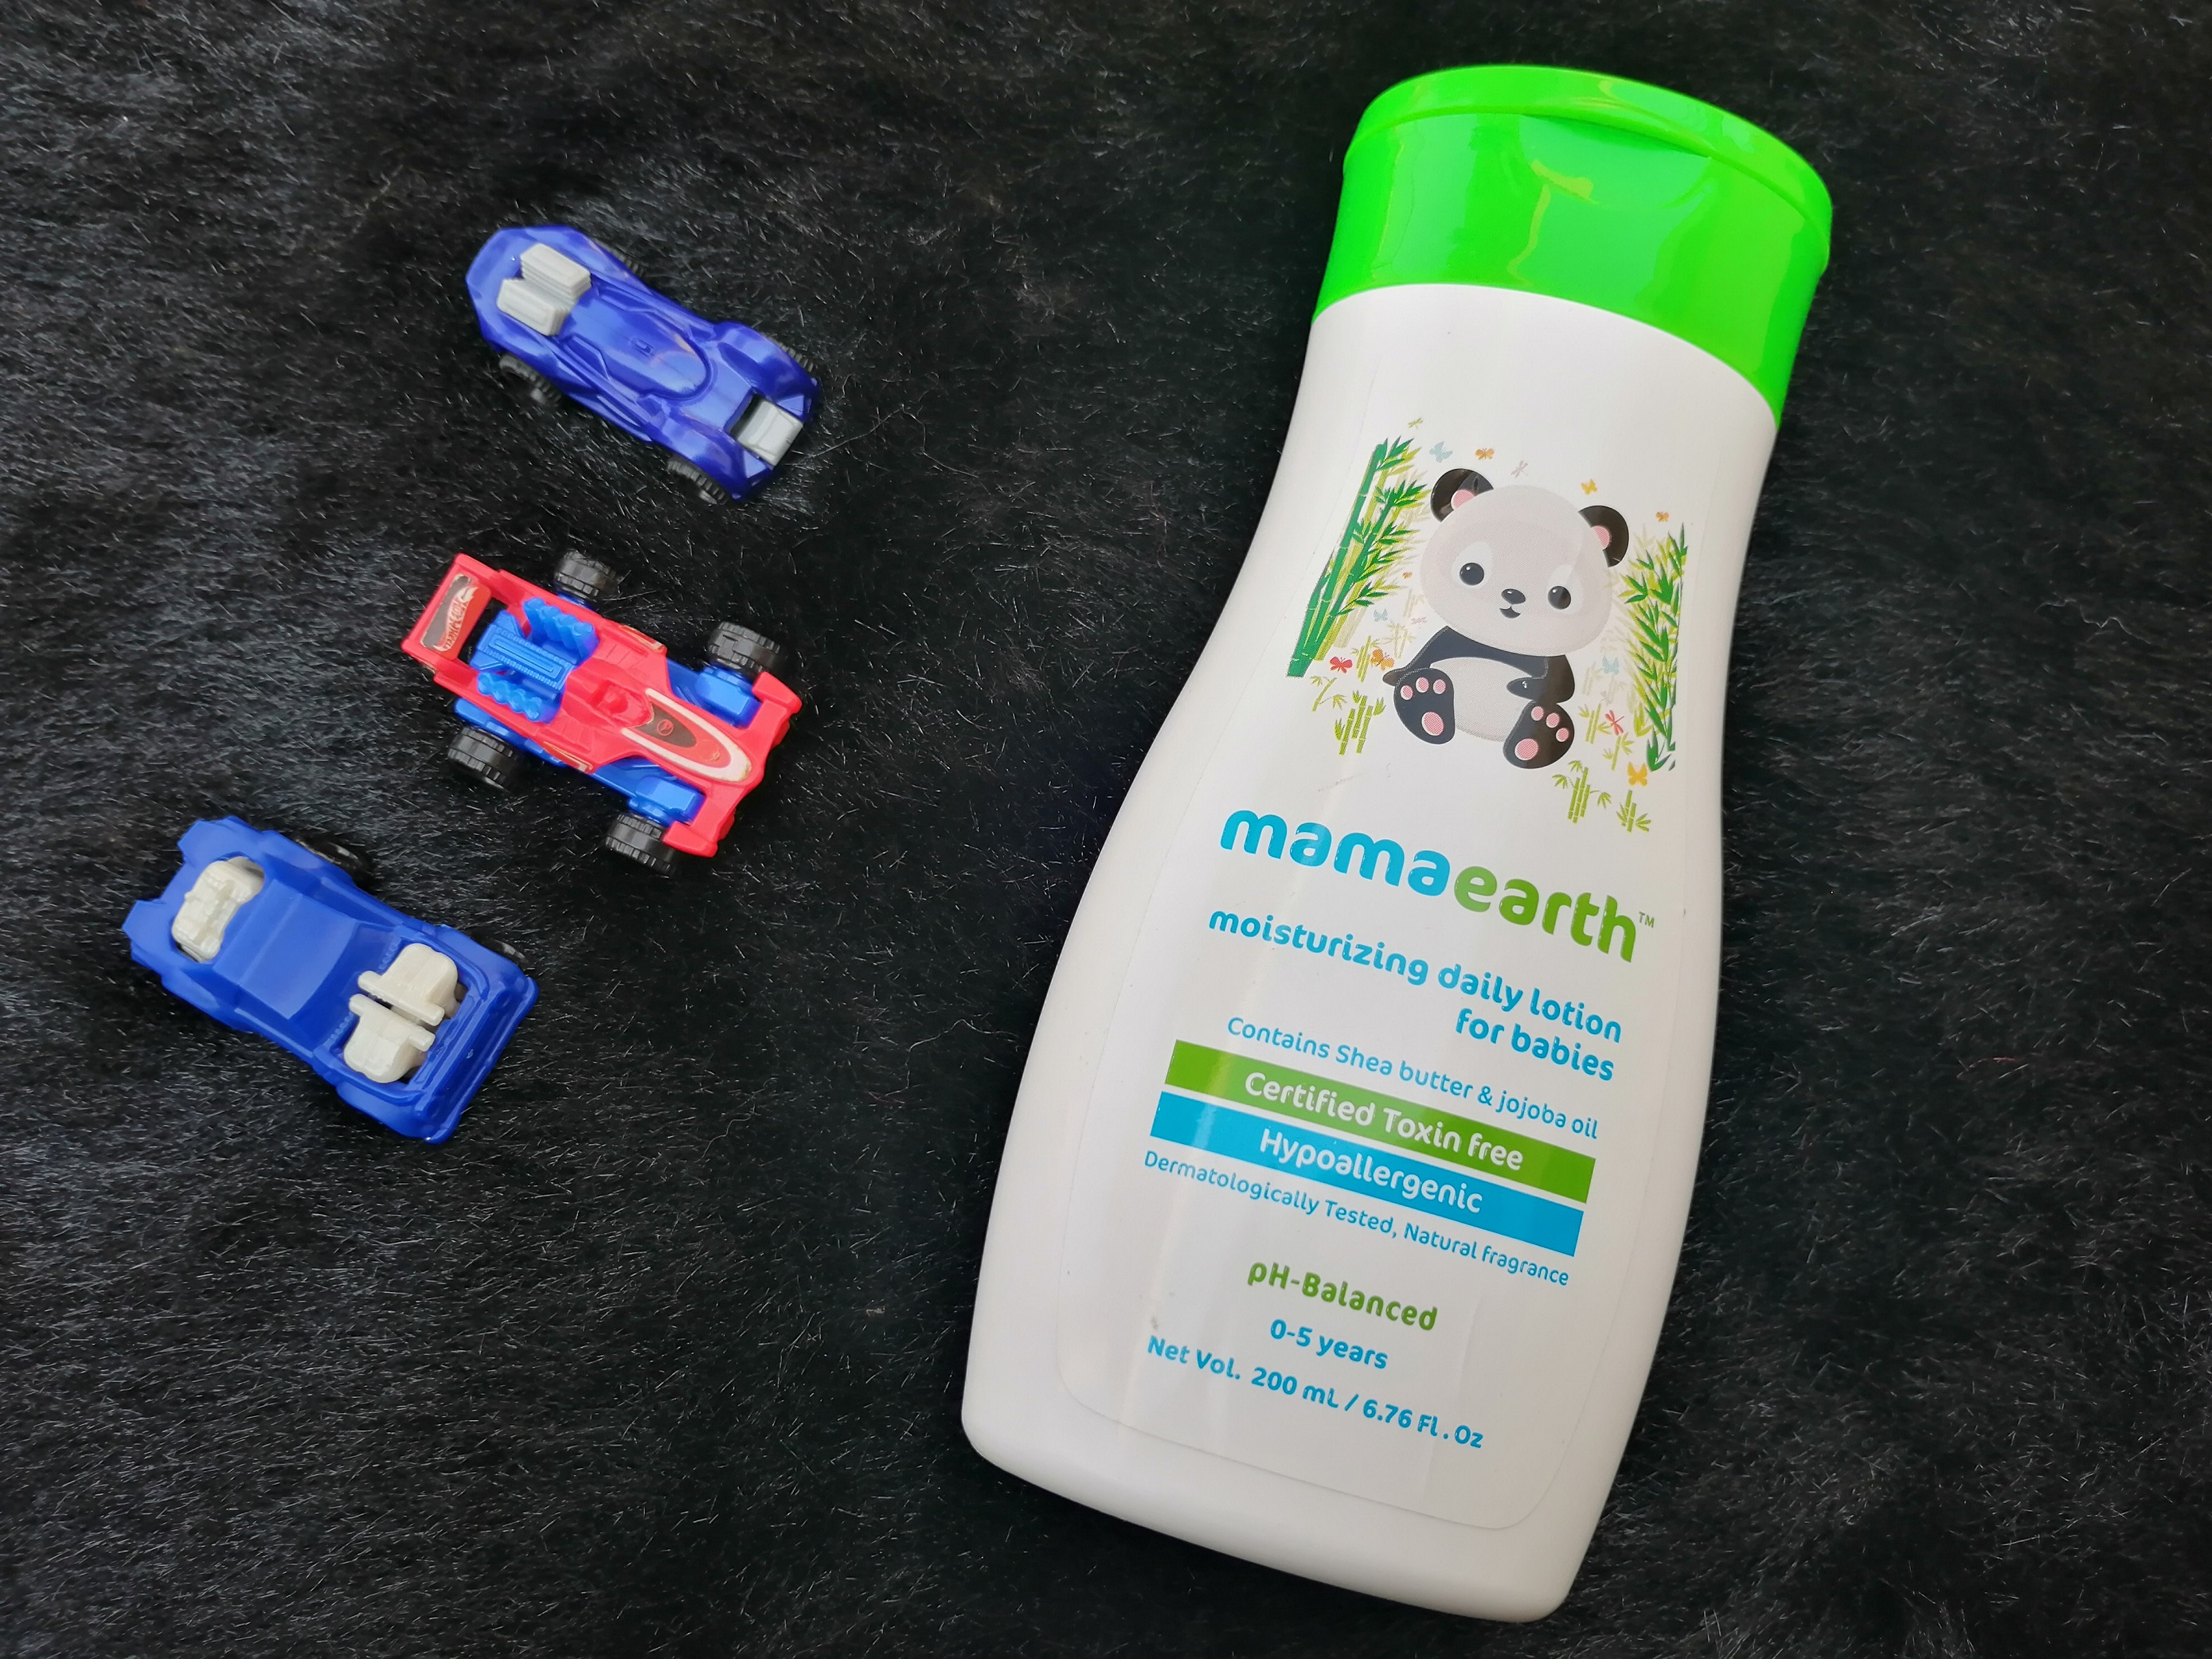 MamaEarth Moisturizing Daily Lotion For Babies| Review